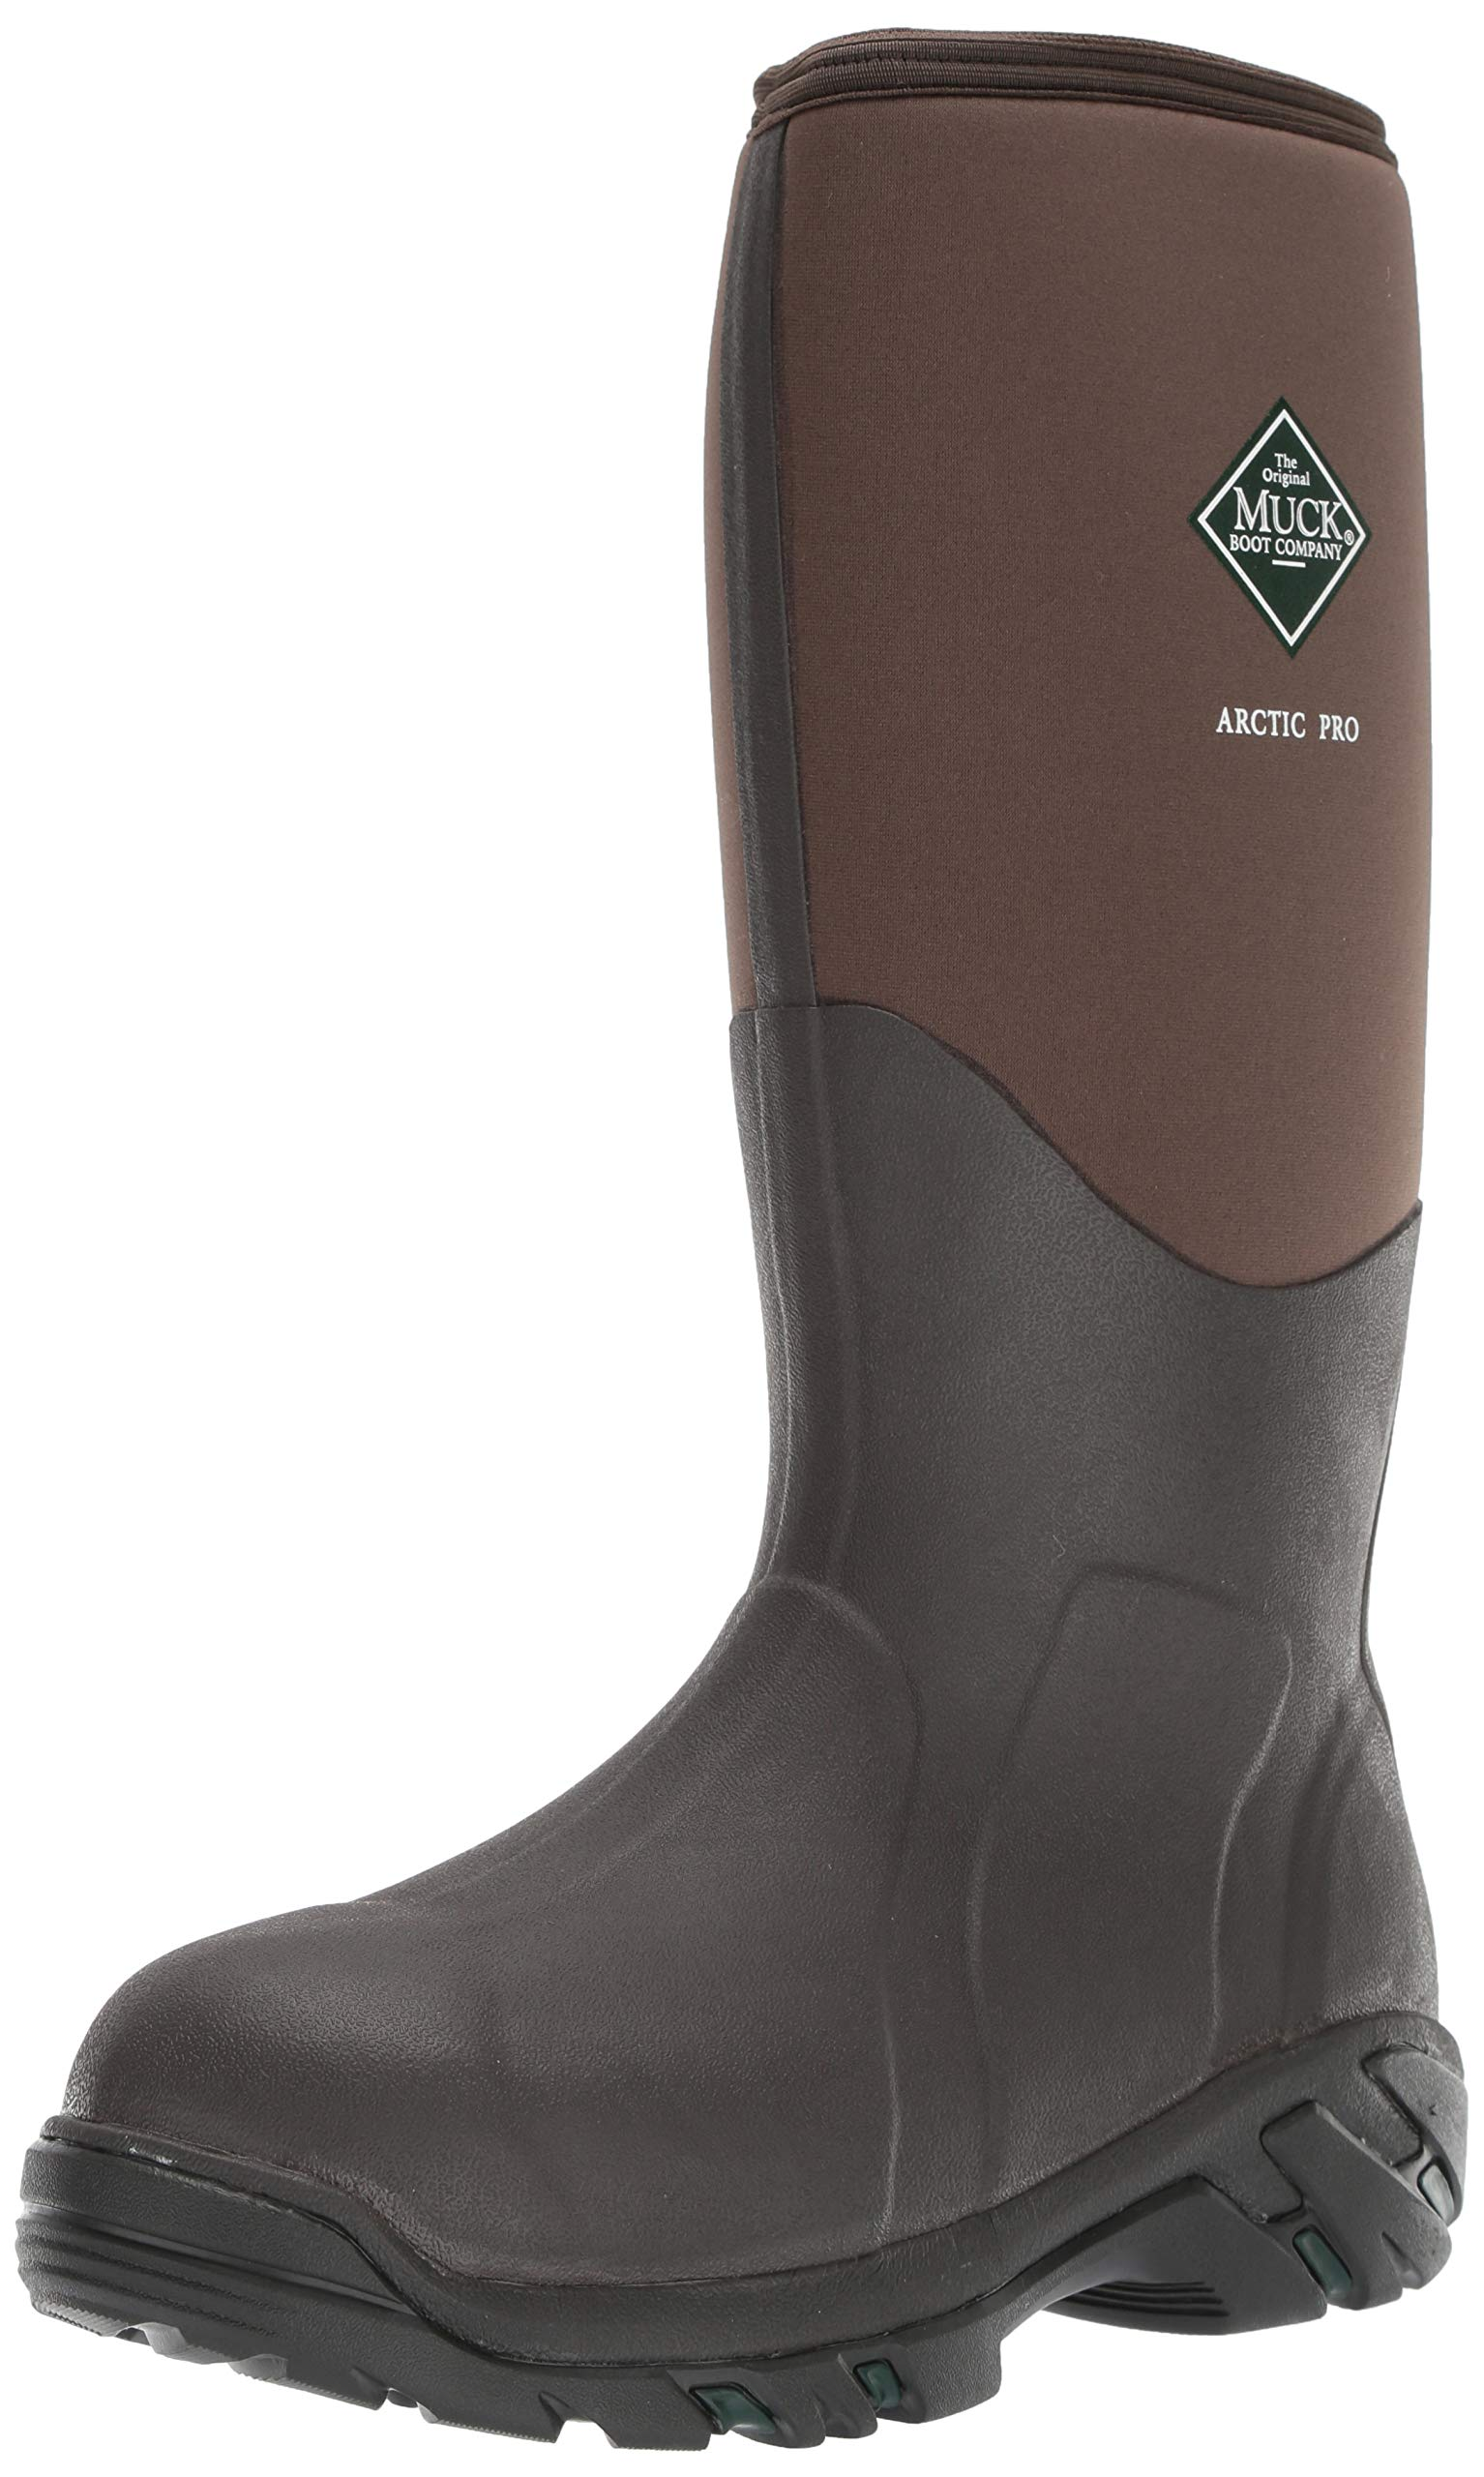 Muck Arctic Pro Tall Rubber Insulated Extreme Conditions Men's Hunting Boots, Bark, 5 M US